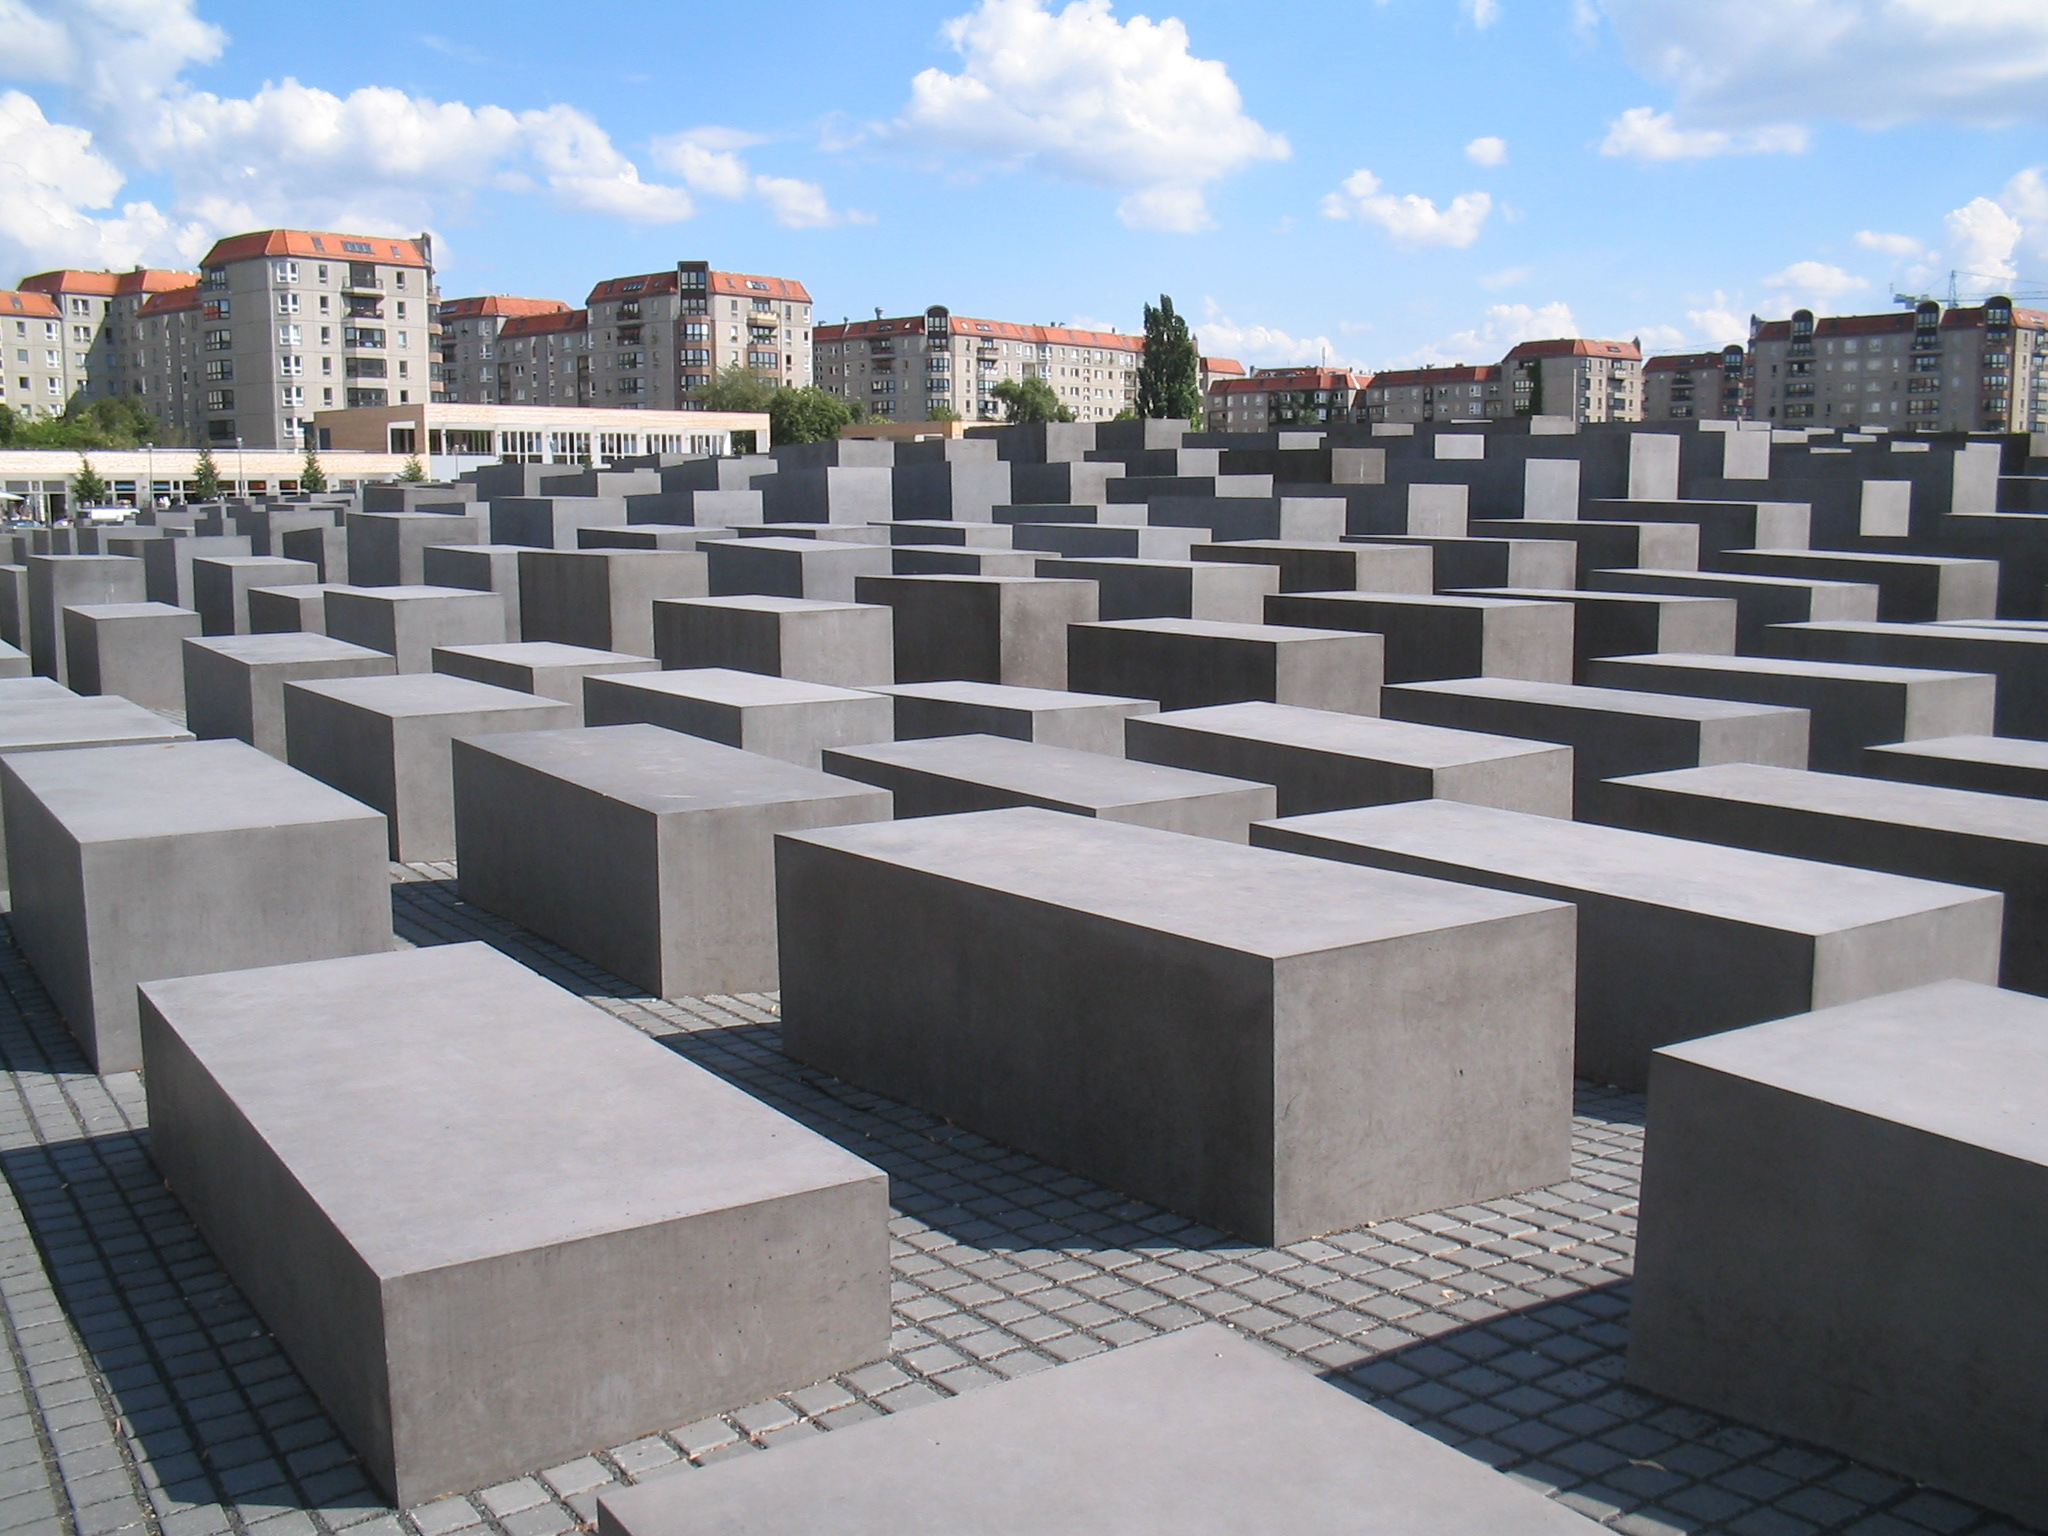 Das Holocaust-Mahnmal in Mitte